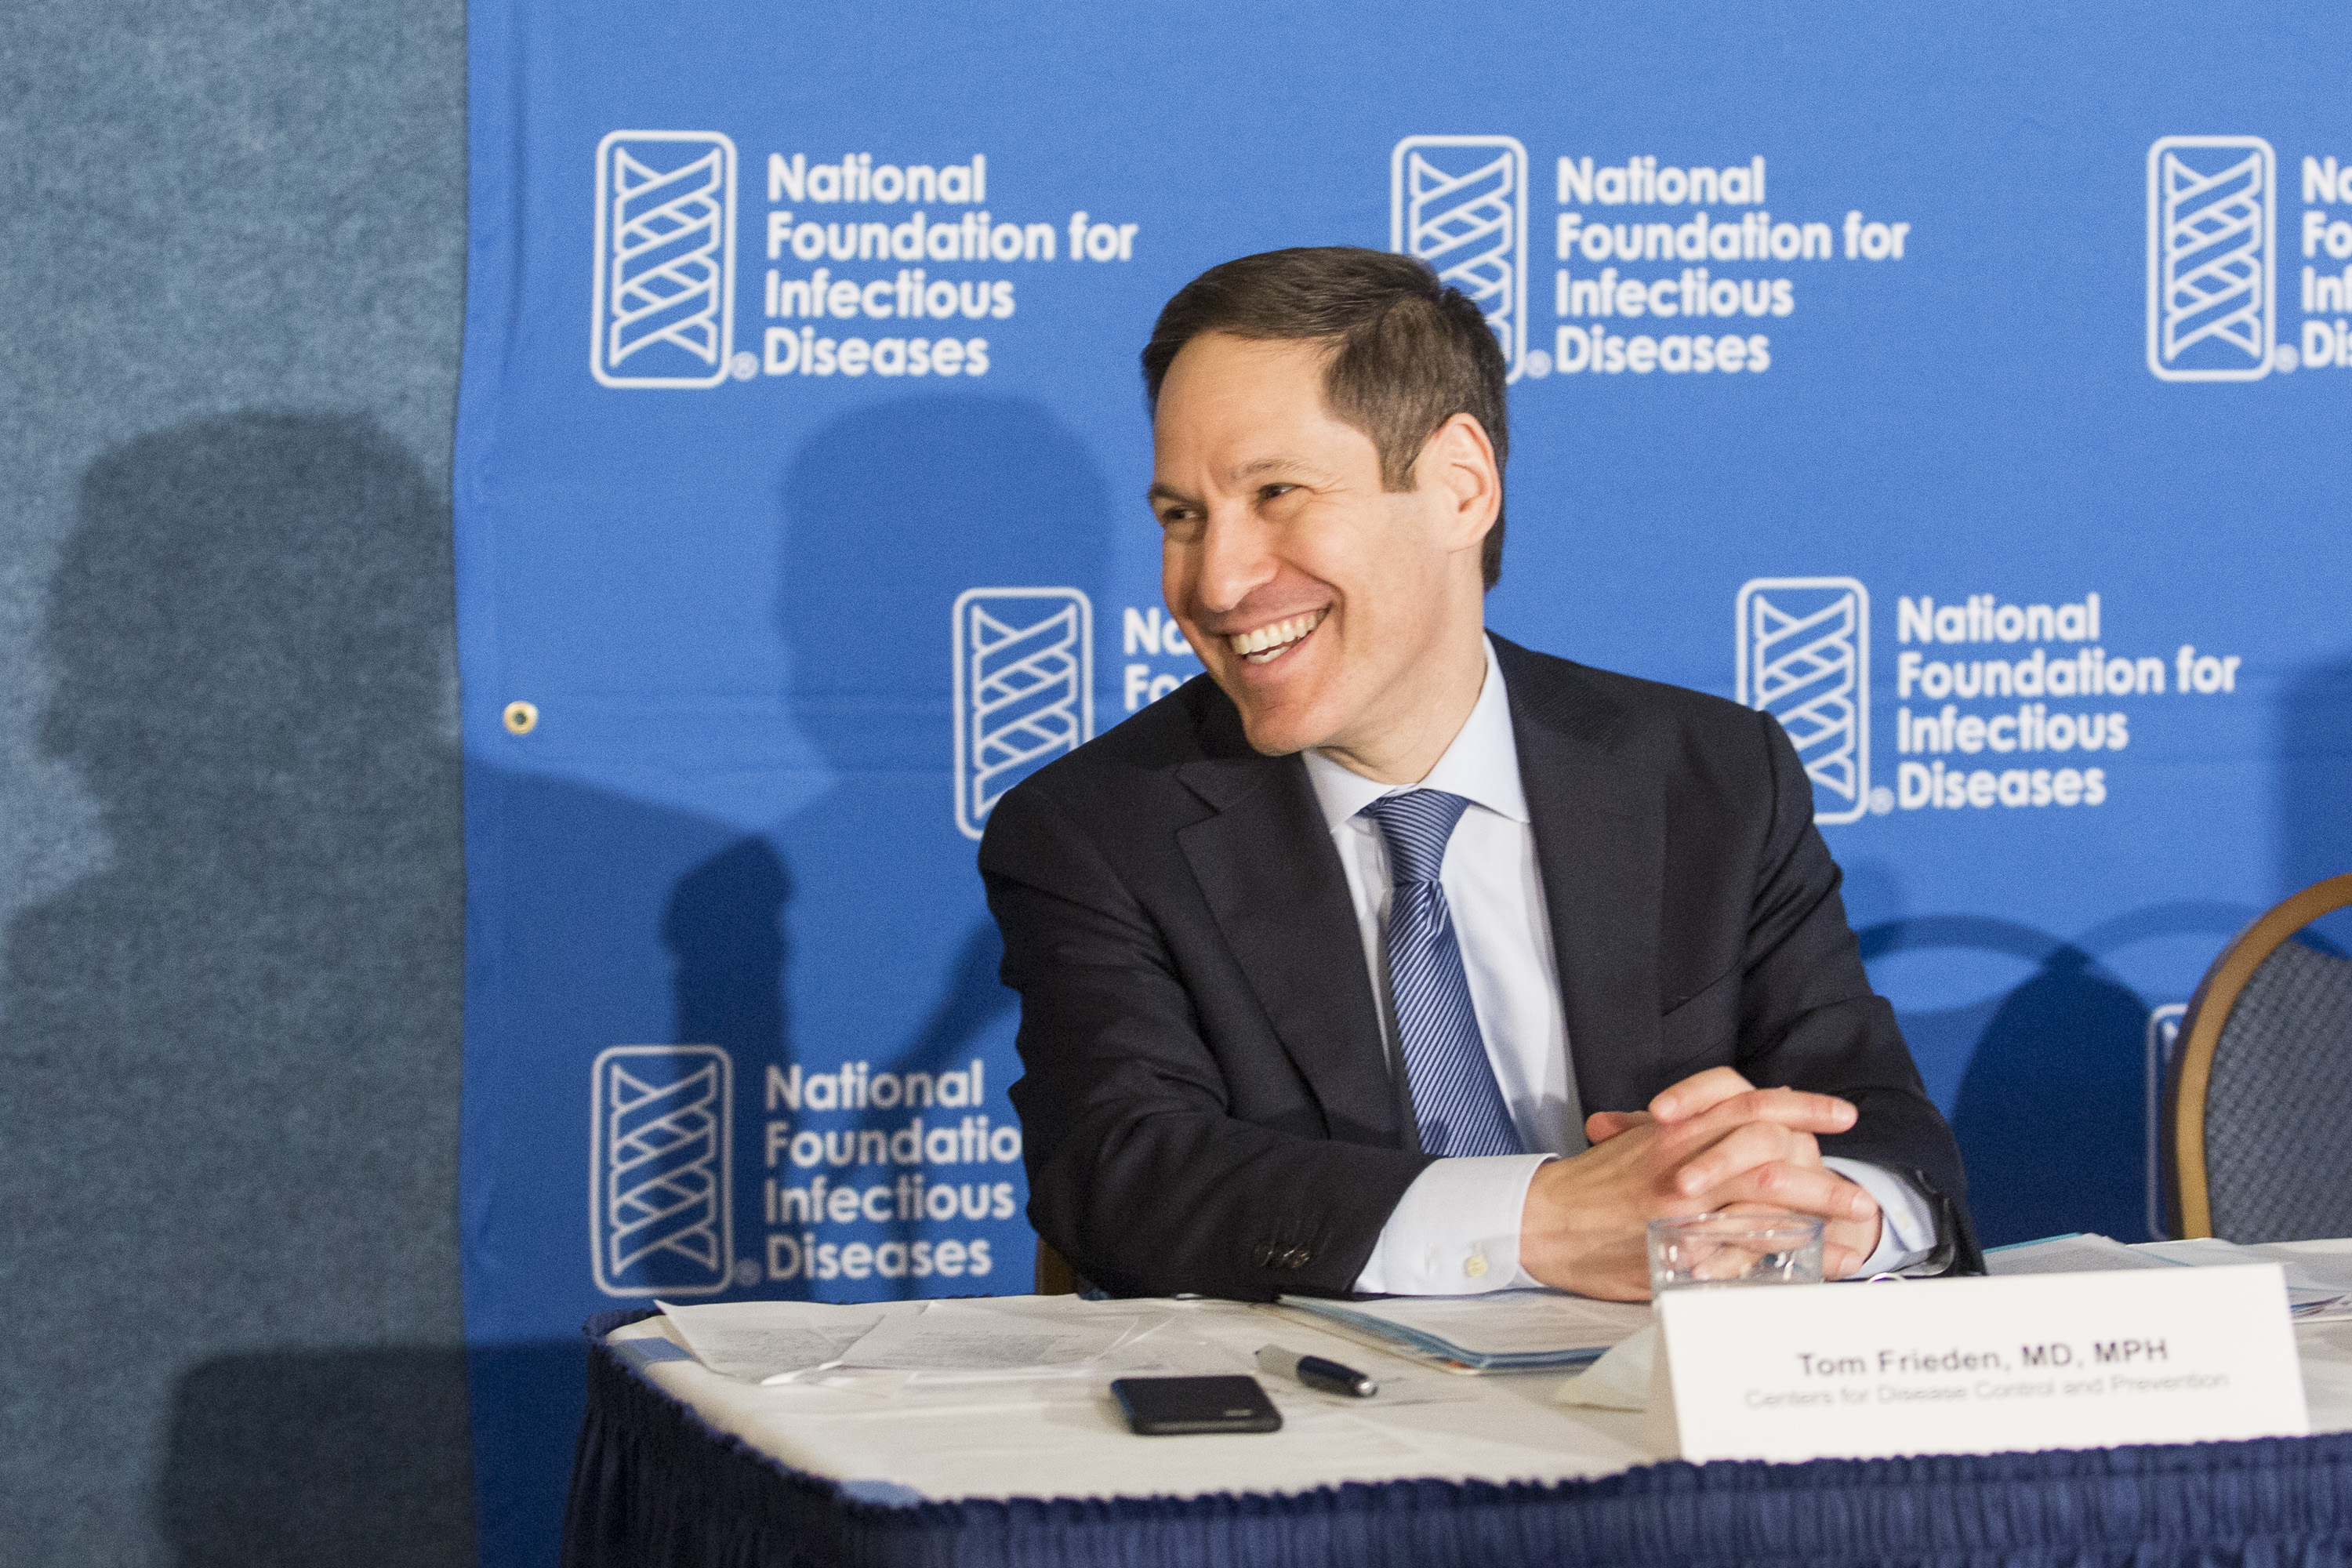 CDC director, Dr. Tom Frieden, leads by example as he gets his flu vaccine at the NFID Annual Influenza/Pneumococcal News Conference.